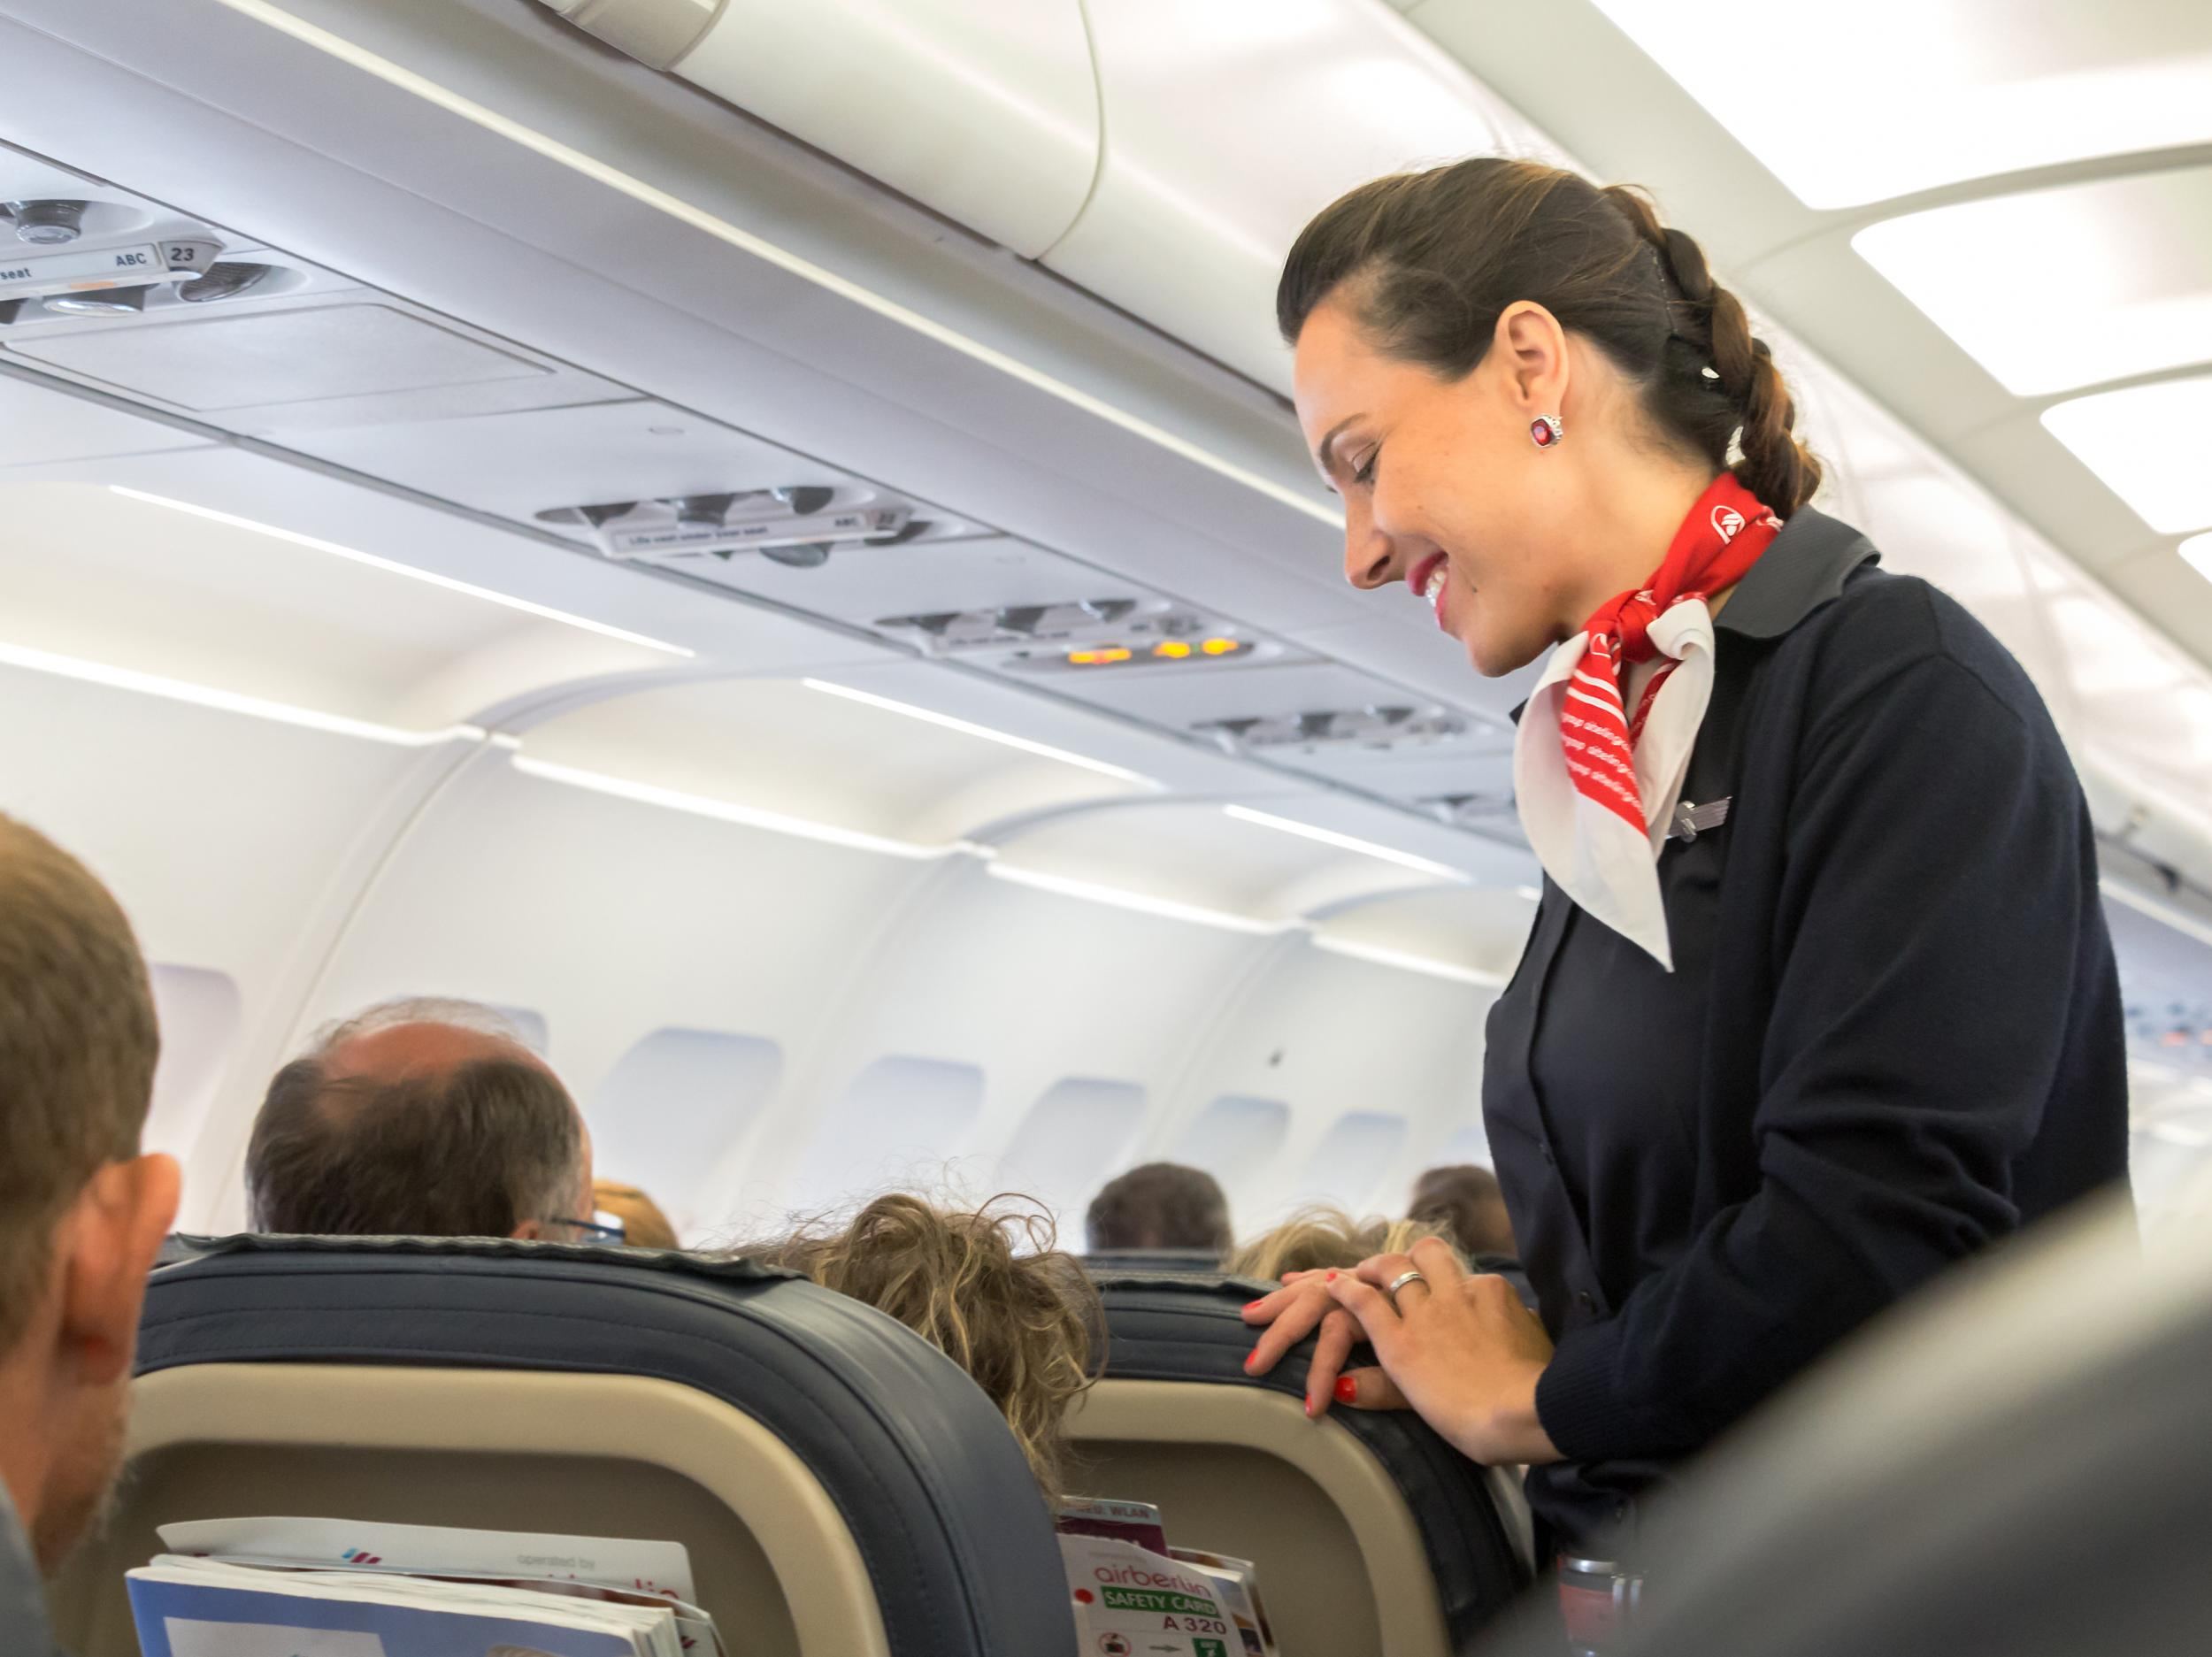 Flight attendants have a higher risk of all types of cancers, finds study